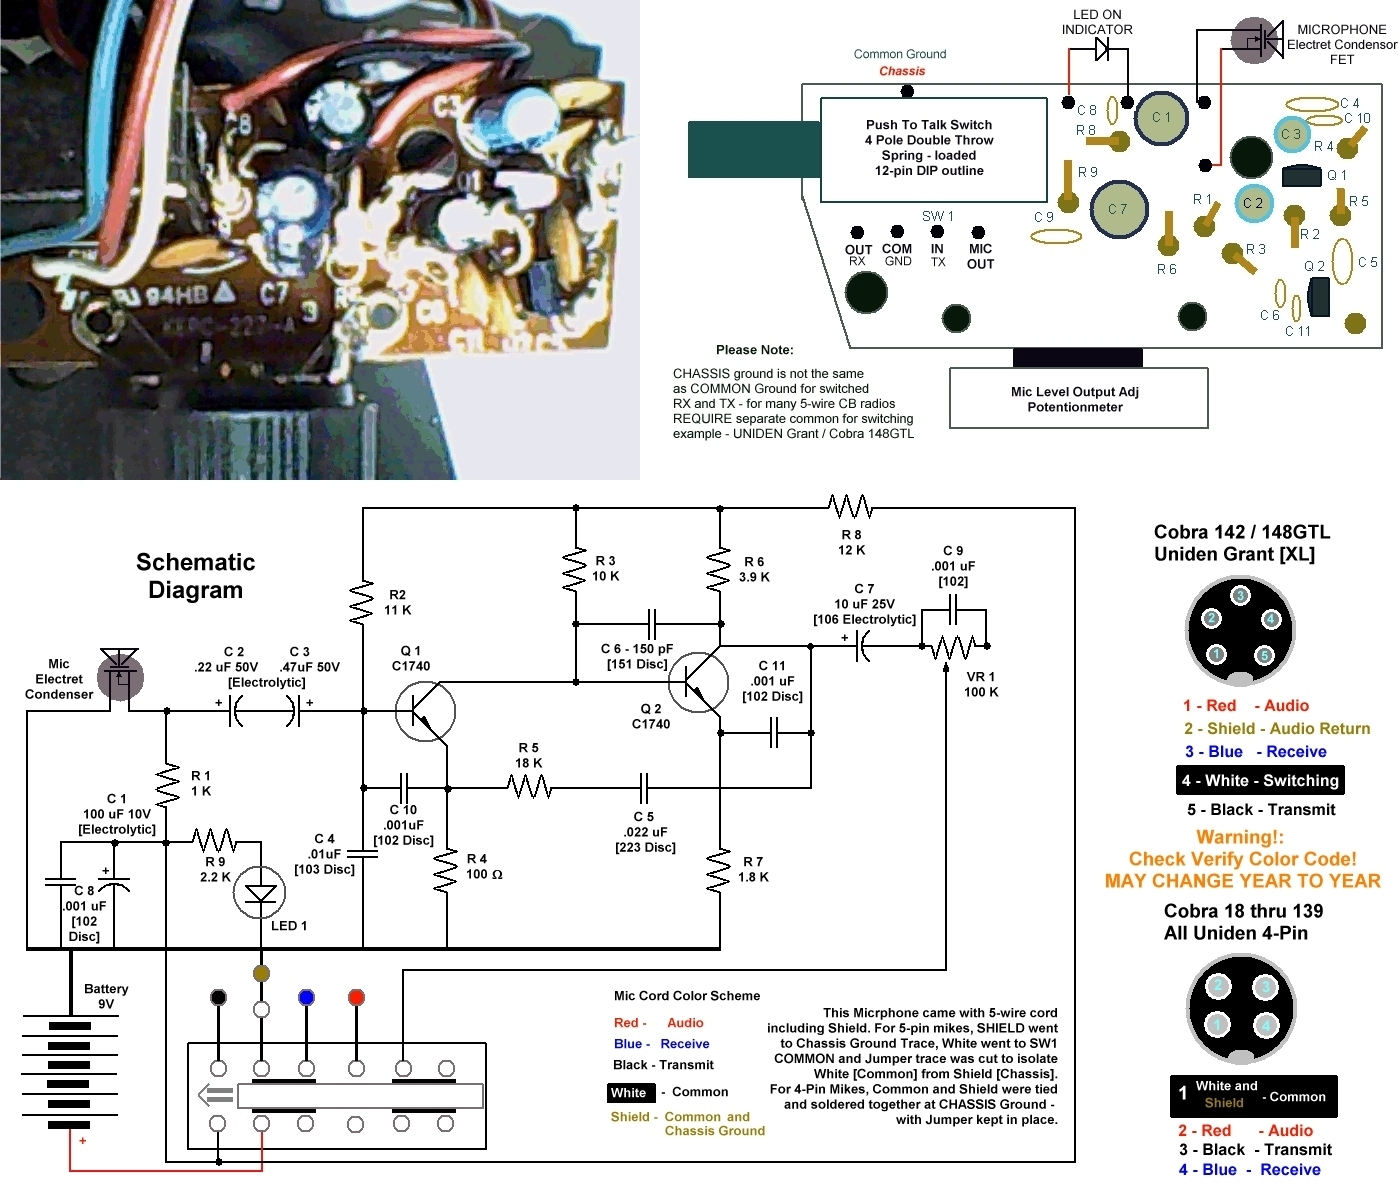 Cobra 29 Mic Wiring Diagram